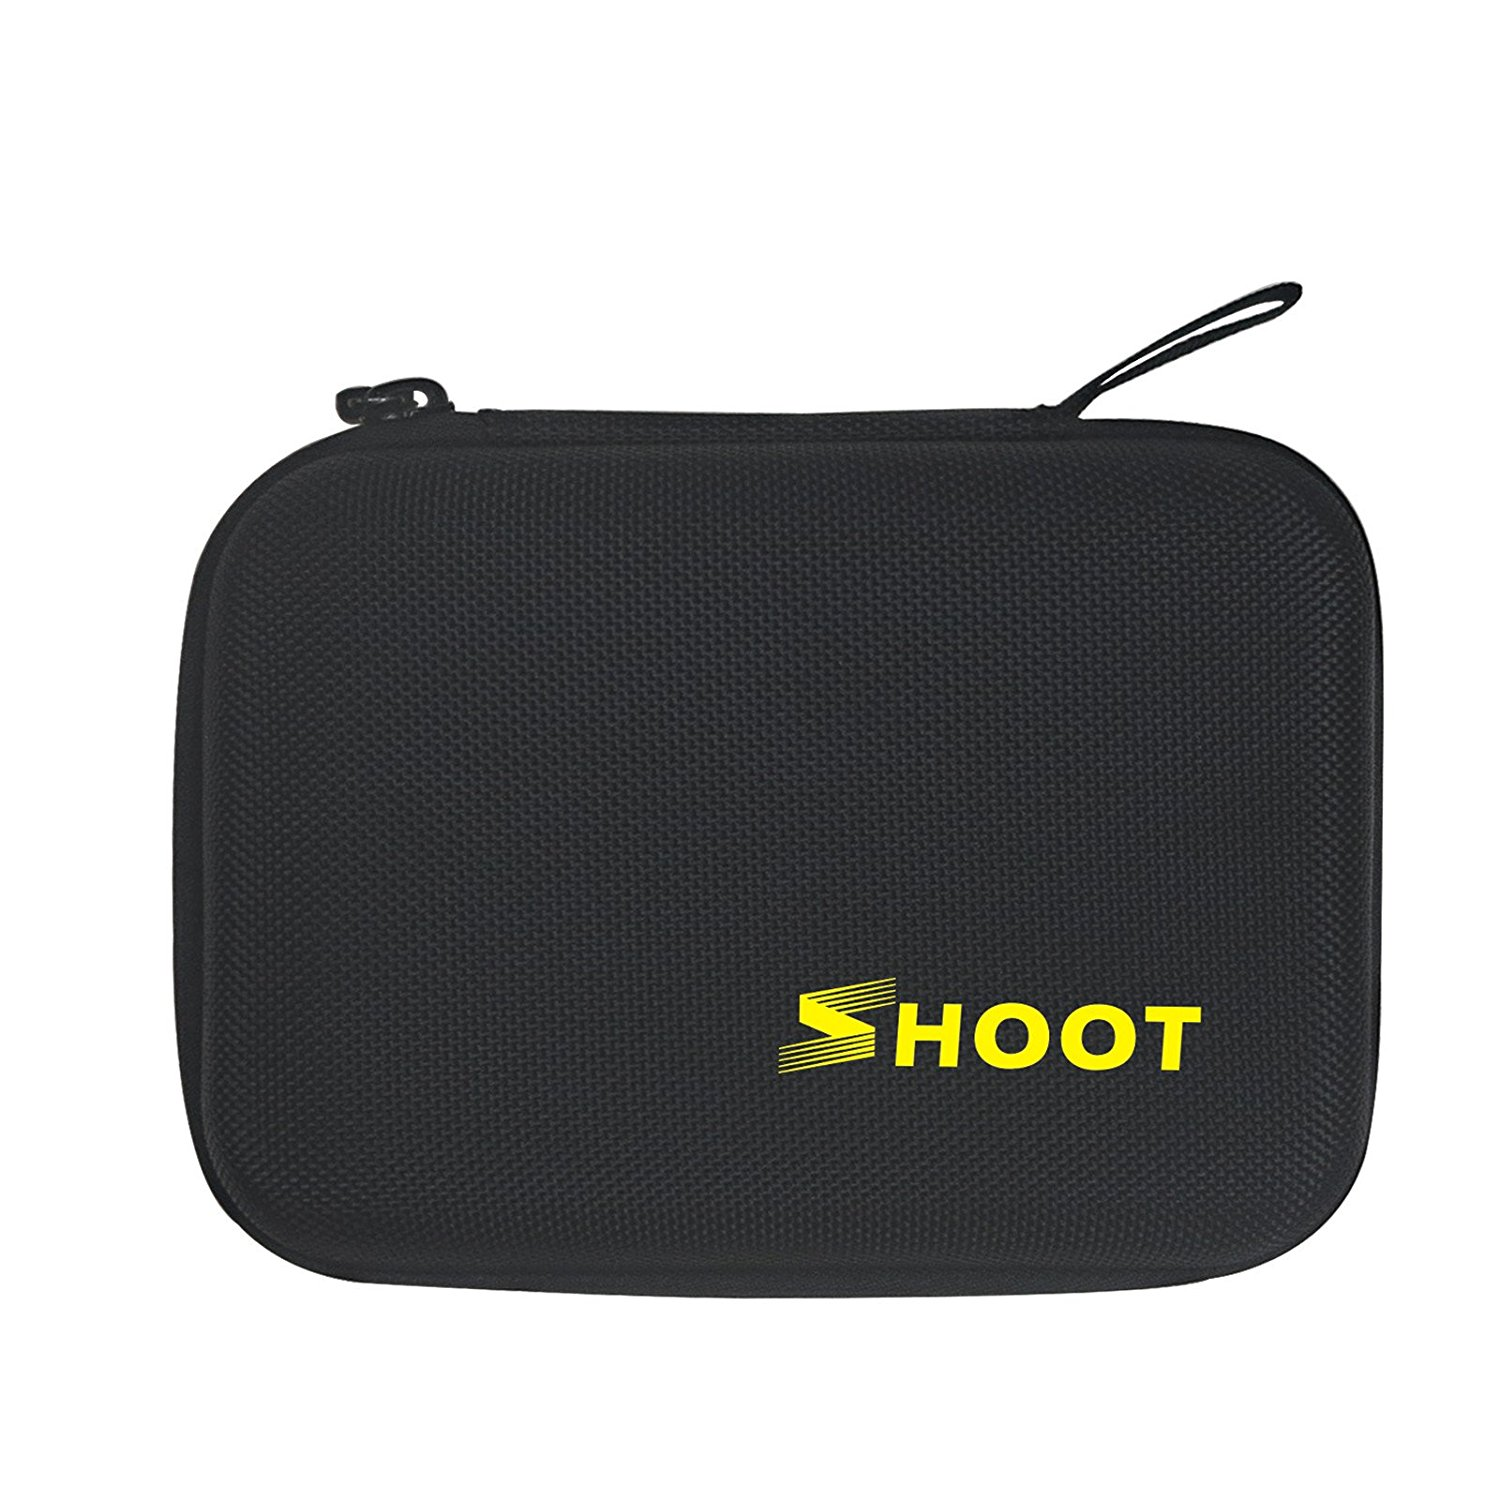 SHOOT Carrying Case for GoPro Hero 7/6/5 Small Size Protective Camera Storage Cases for GoPro Hero 7/6/5/4/3+/3/HERO(2018)/Fusion Campark AKASO DBPOWER Crosstour FITFORT Accessories(6.3''x4.8''x2.8'')